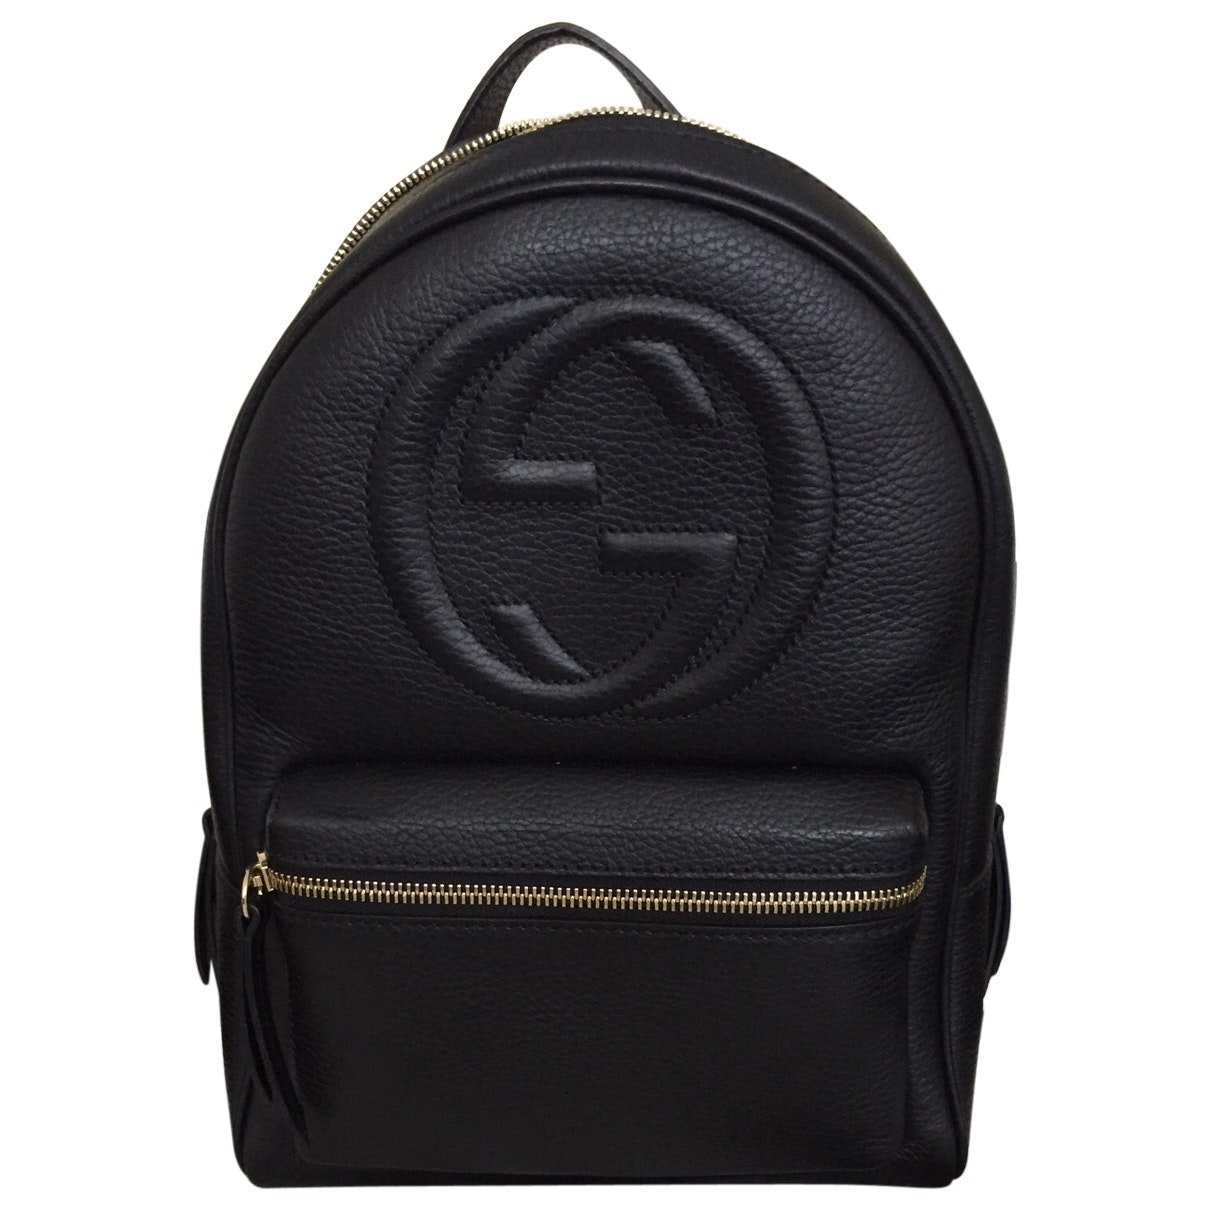 aec5f272cc78 Amazon.com: Gucci Soho Black Backpack Calf Leather Backpack Ladies Bag  Italy New : Shoes